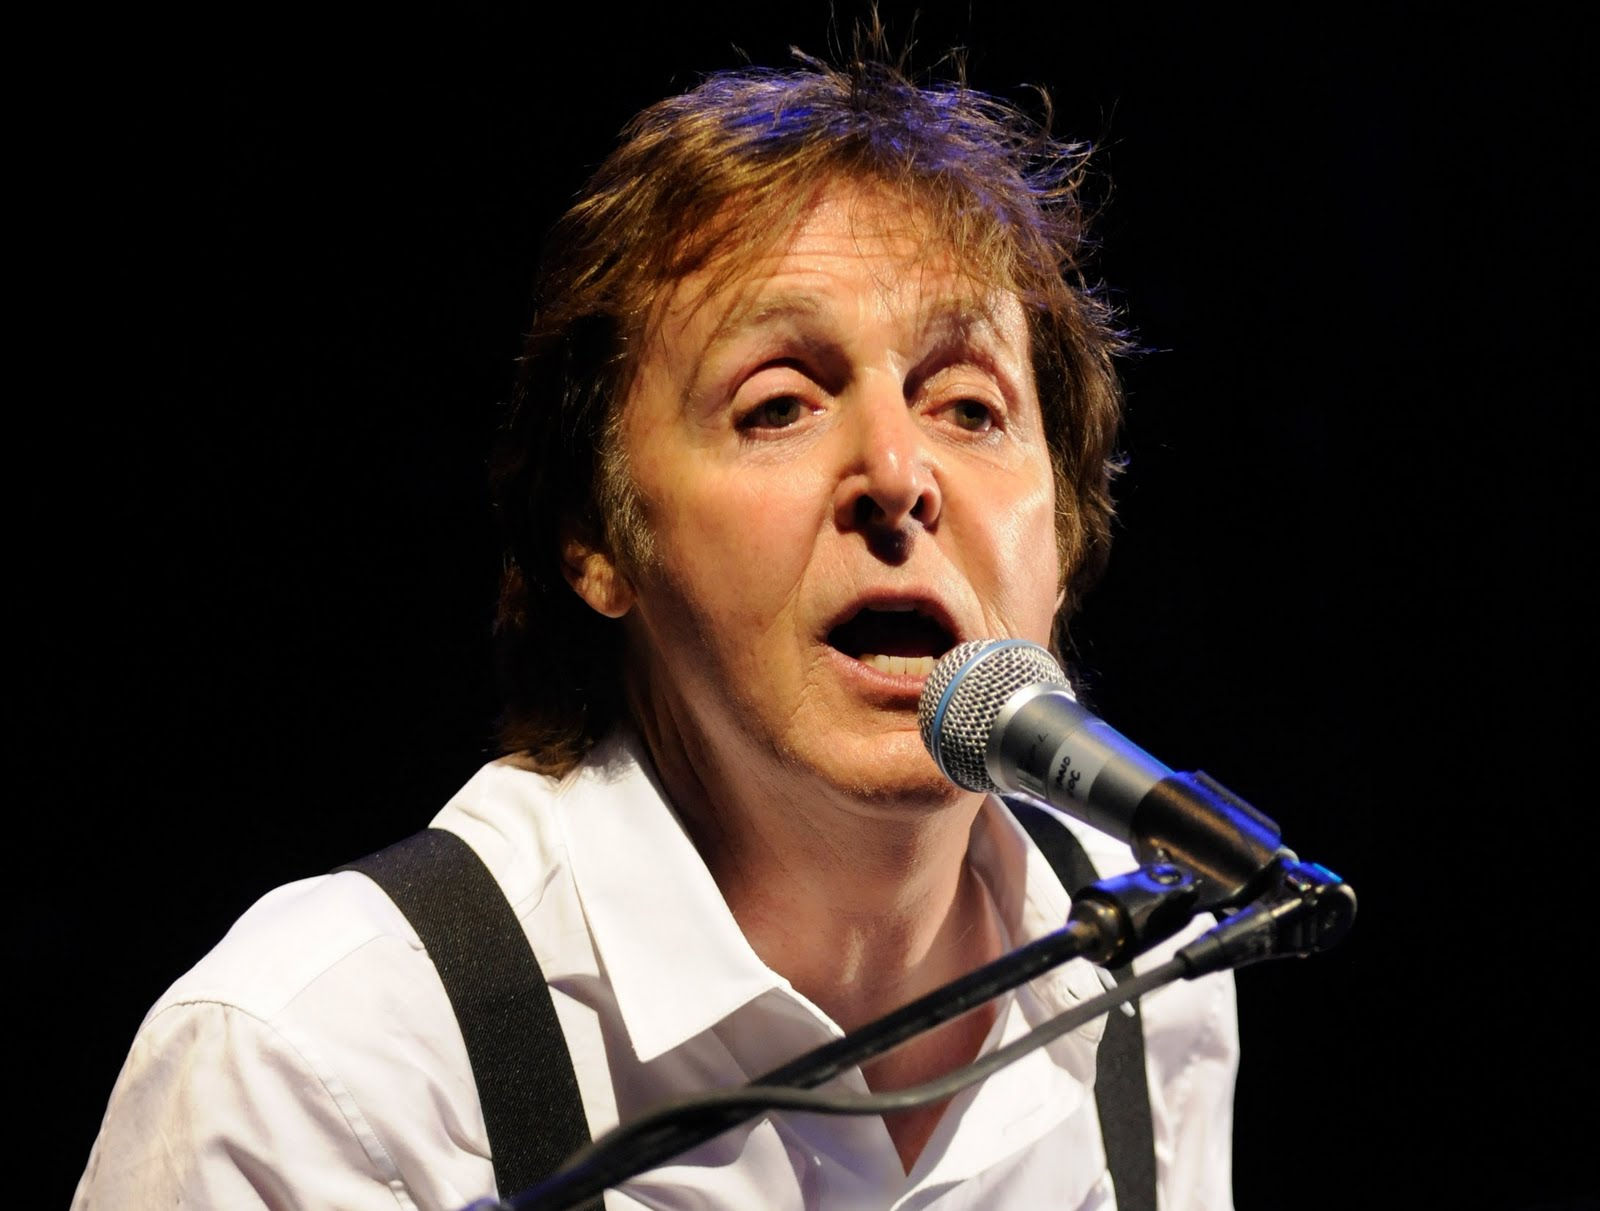 http://3.bp.blogspot.com/-K_n5DW42GXs/T5hAzrGFzUI/AAAAAAAAAYE/4worMi_YZ8M/s1600/paul-mccartney-4-17-091+-+Copy+(2).jpg